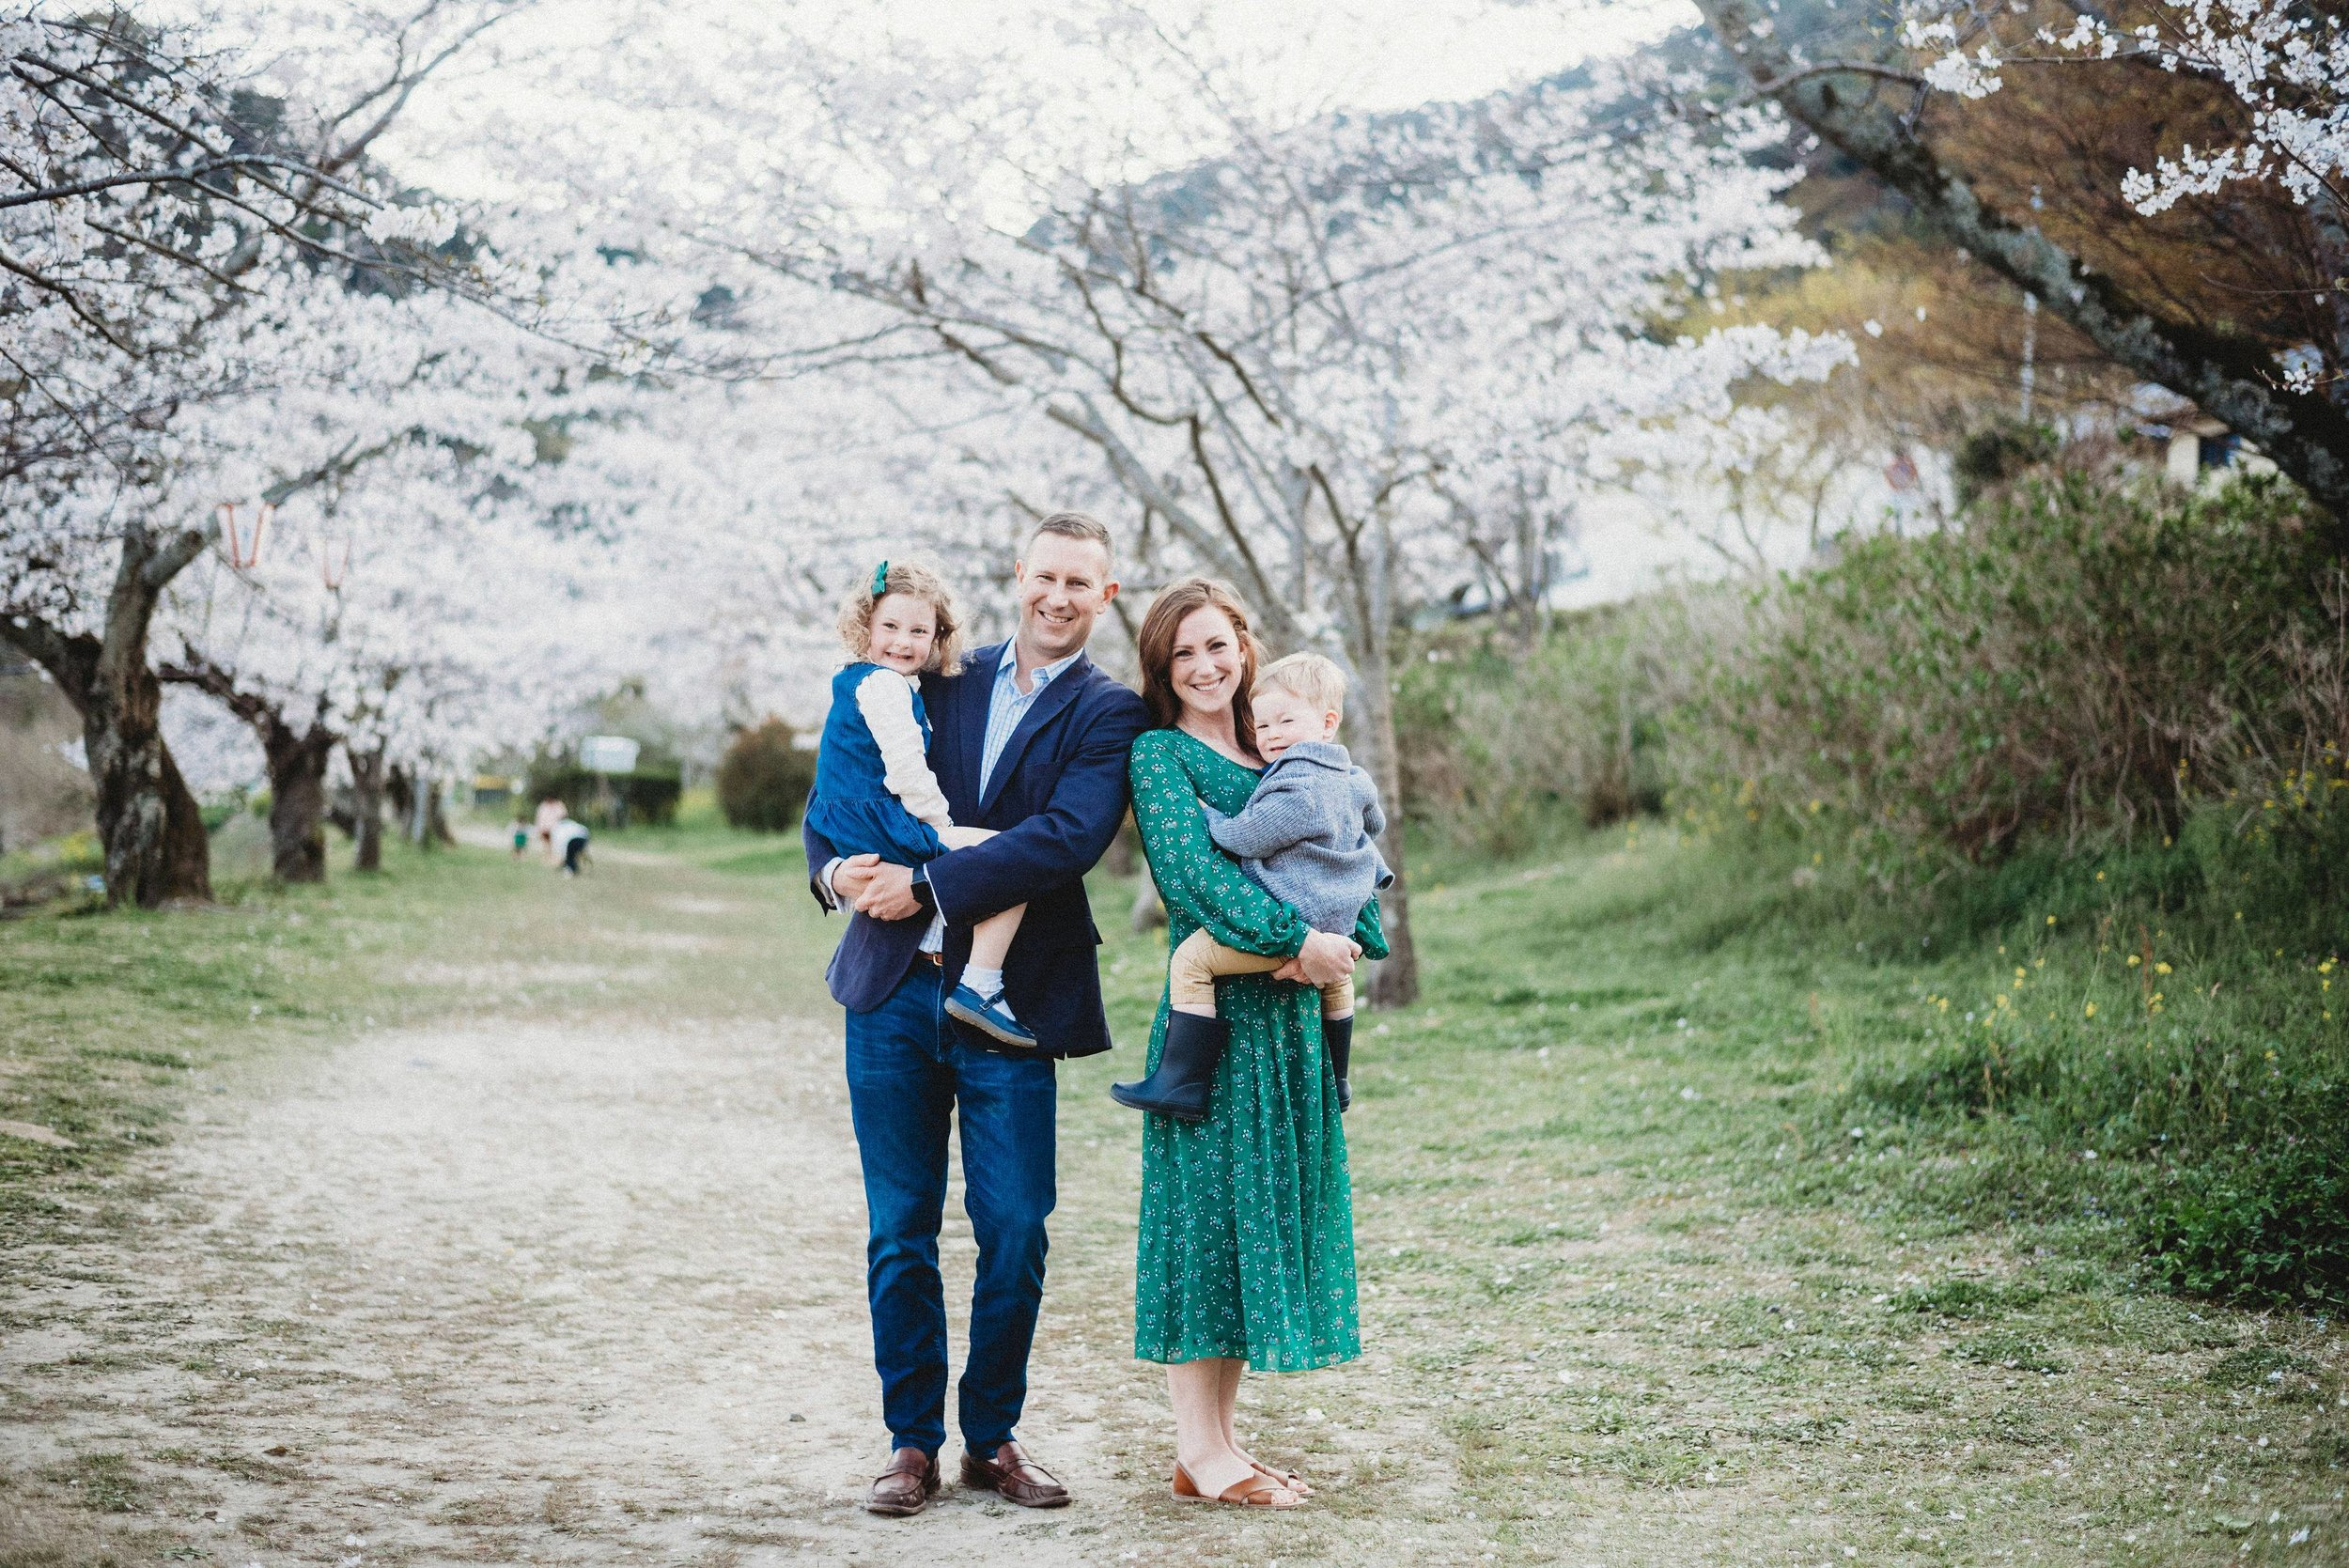 Sarah Light  Membership H&HS   Sarah Light, Membership chair, is a mama of two, physical therapist, and a Clemson Tiger! She is currently enjoying her time off from working while living in Japan and spends her free time traveling, hiking, exploring with her family, and volunteering in the community.